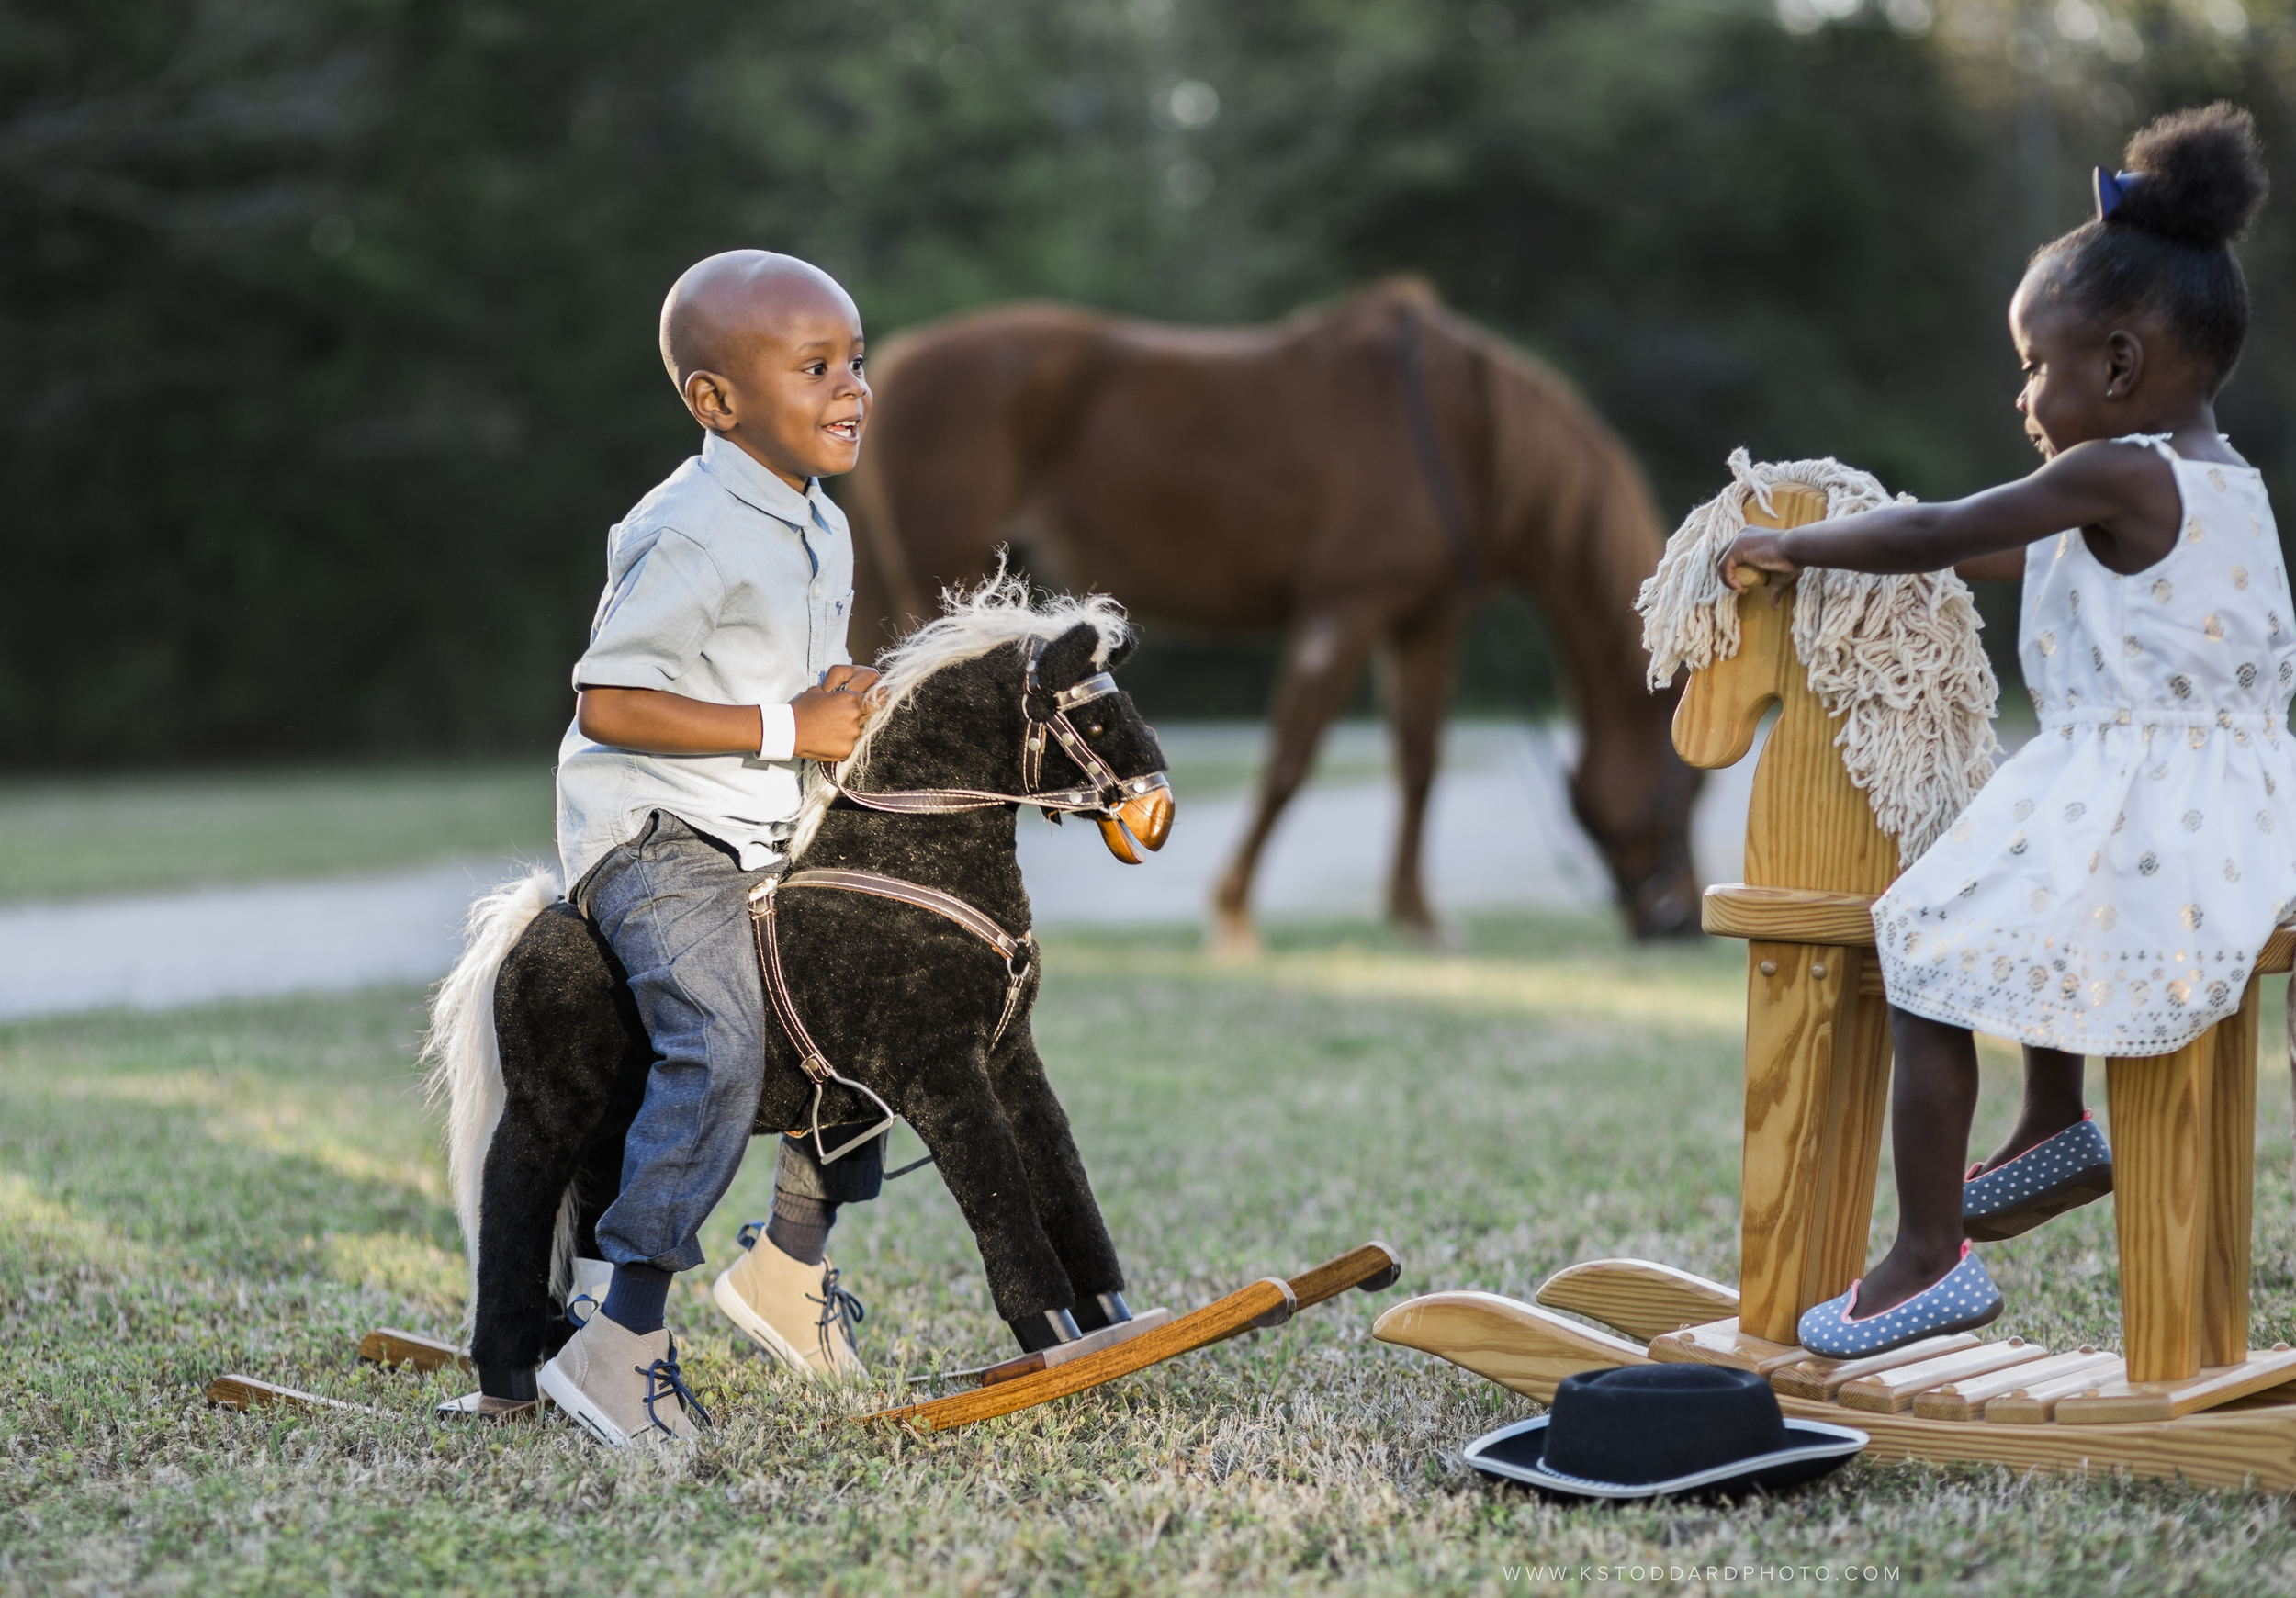 K'meil and Family - St. Jude Children's Research Hospital - Memphis - K. Stoddard Photography 017.jpg